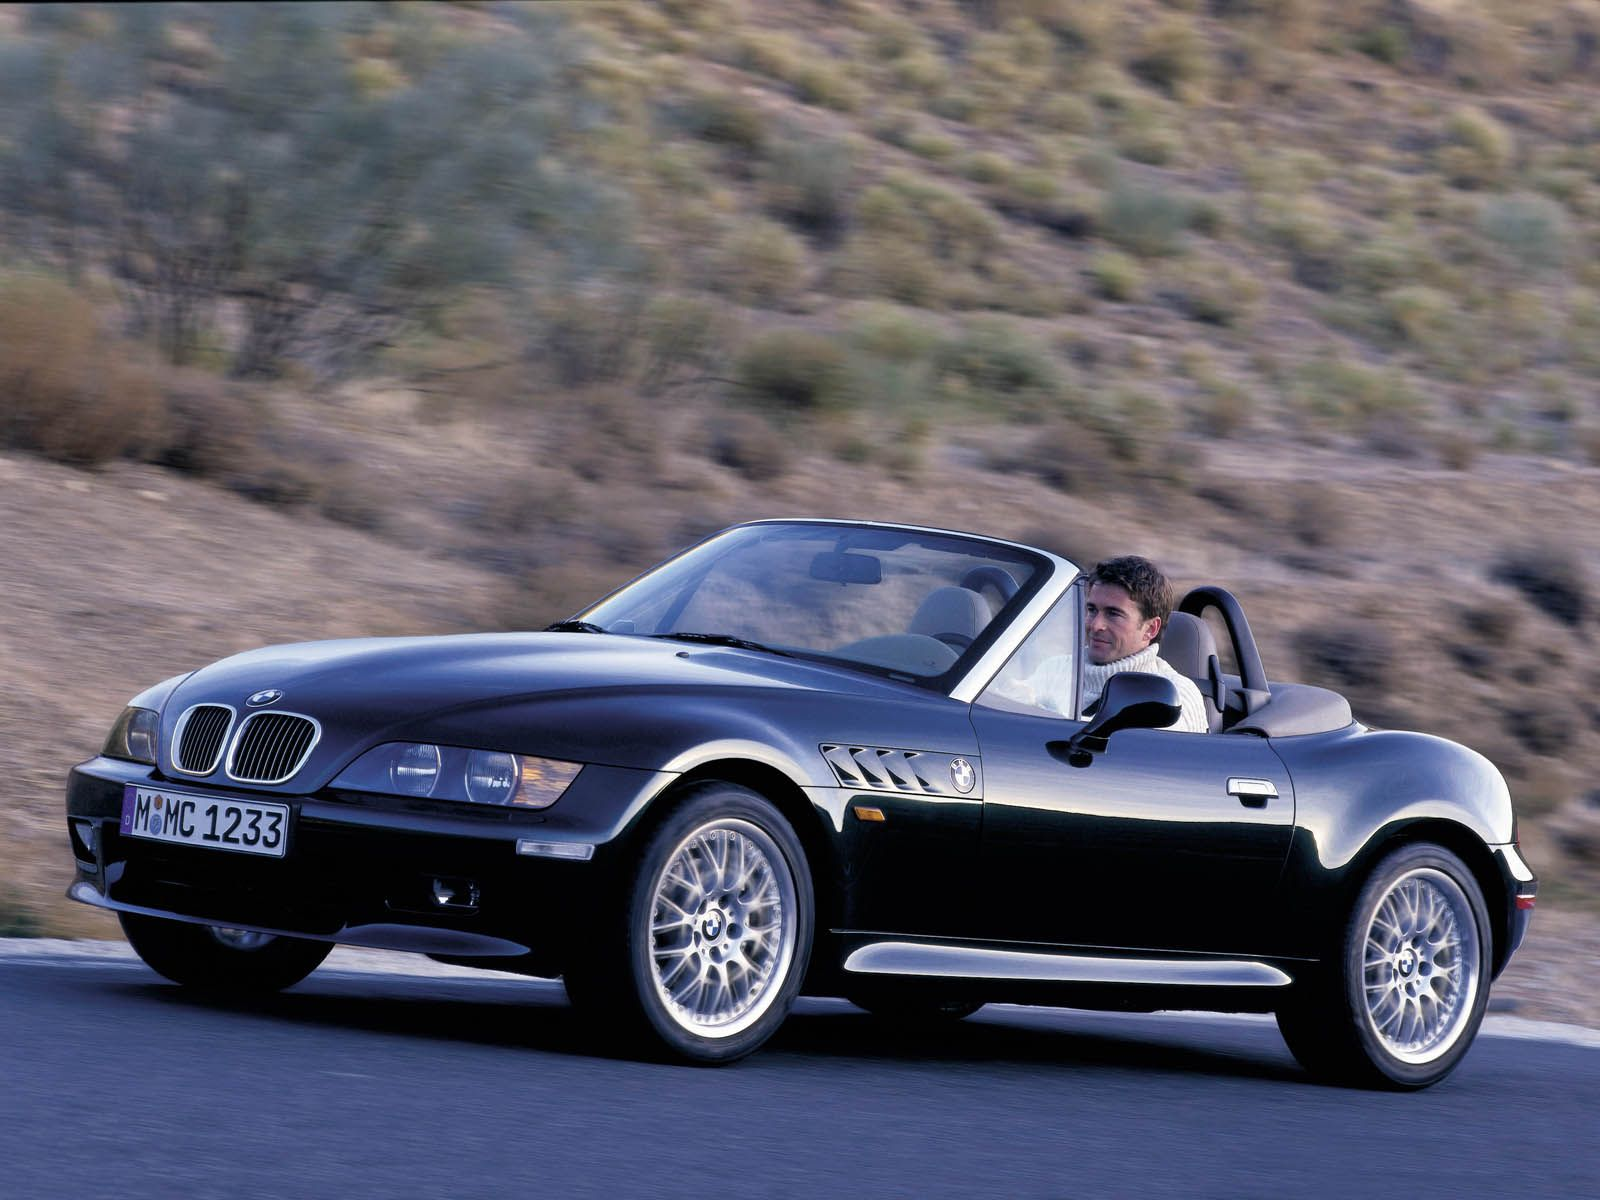 E36 4 Bmw Z3 Roadster Coupe Bmw Z3 Bmw Roadsters